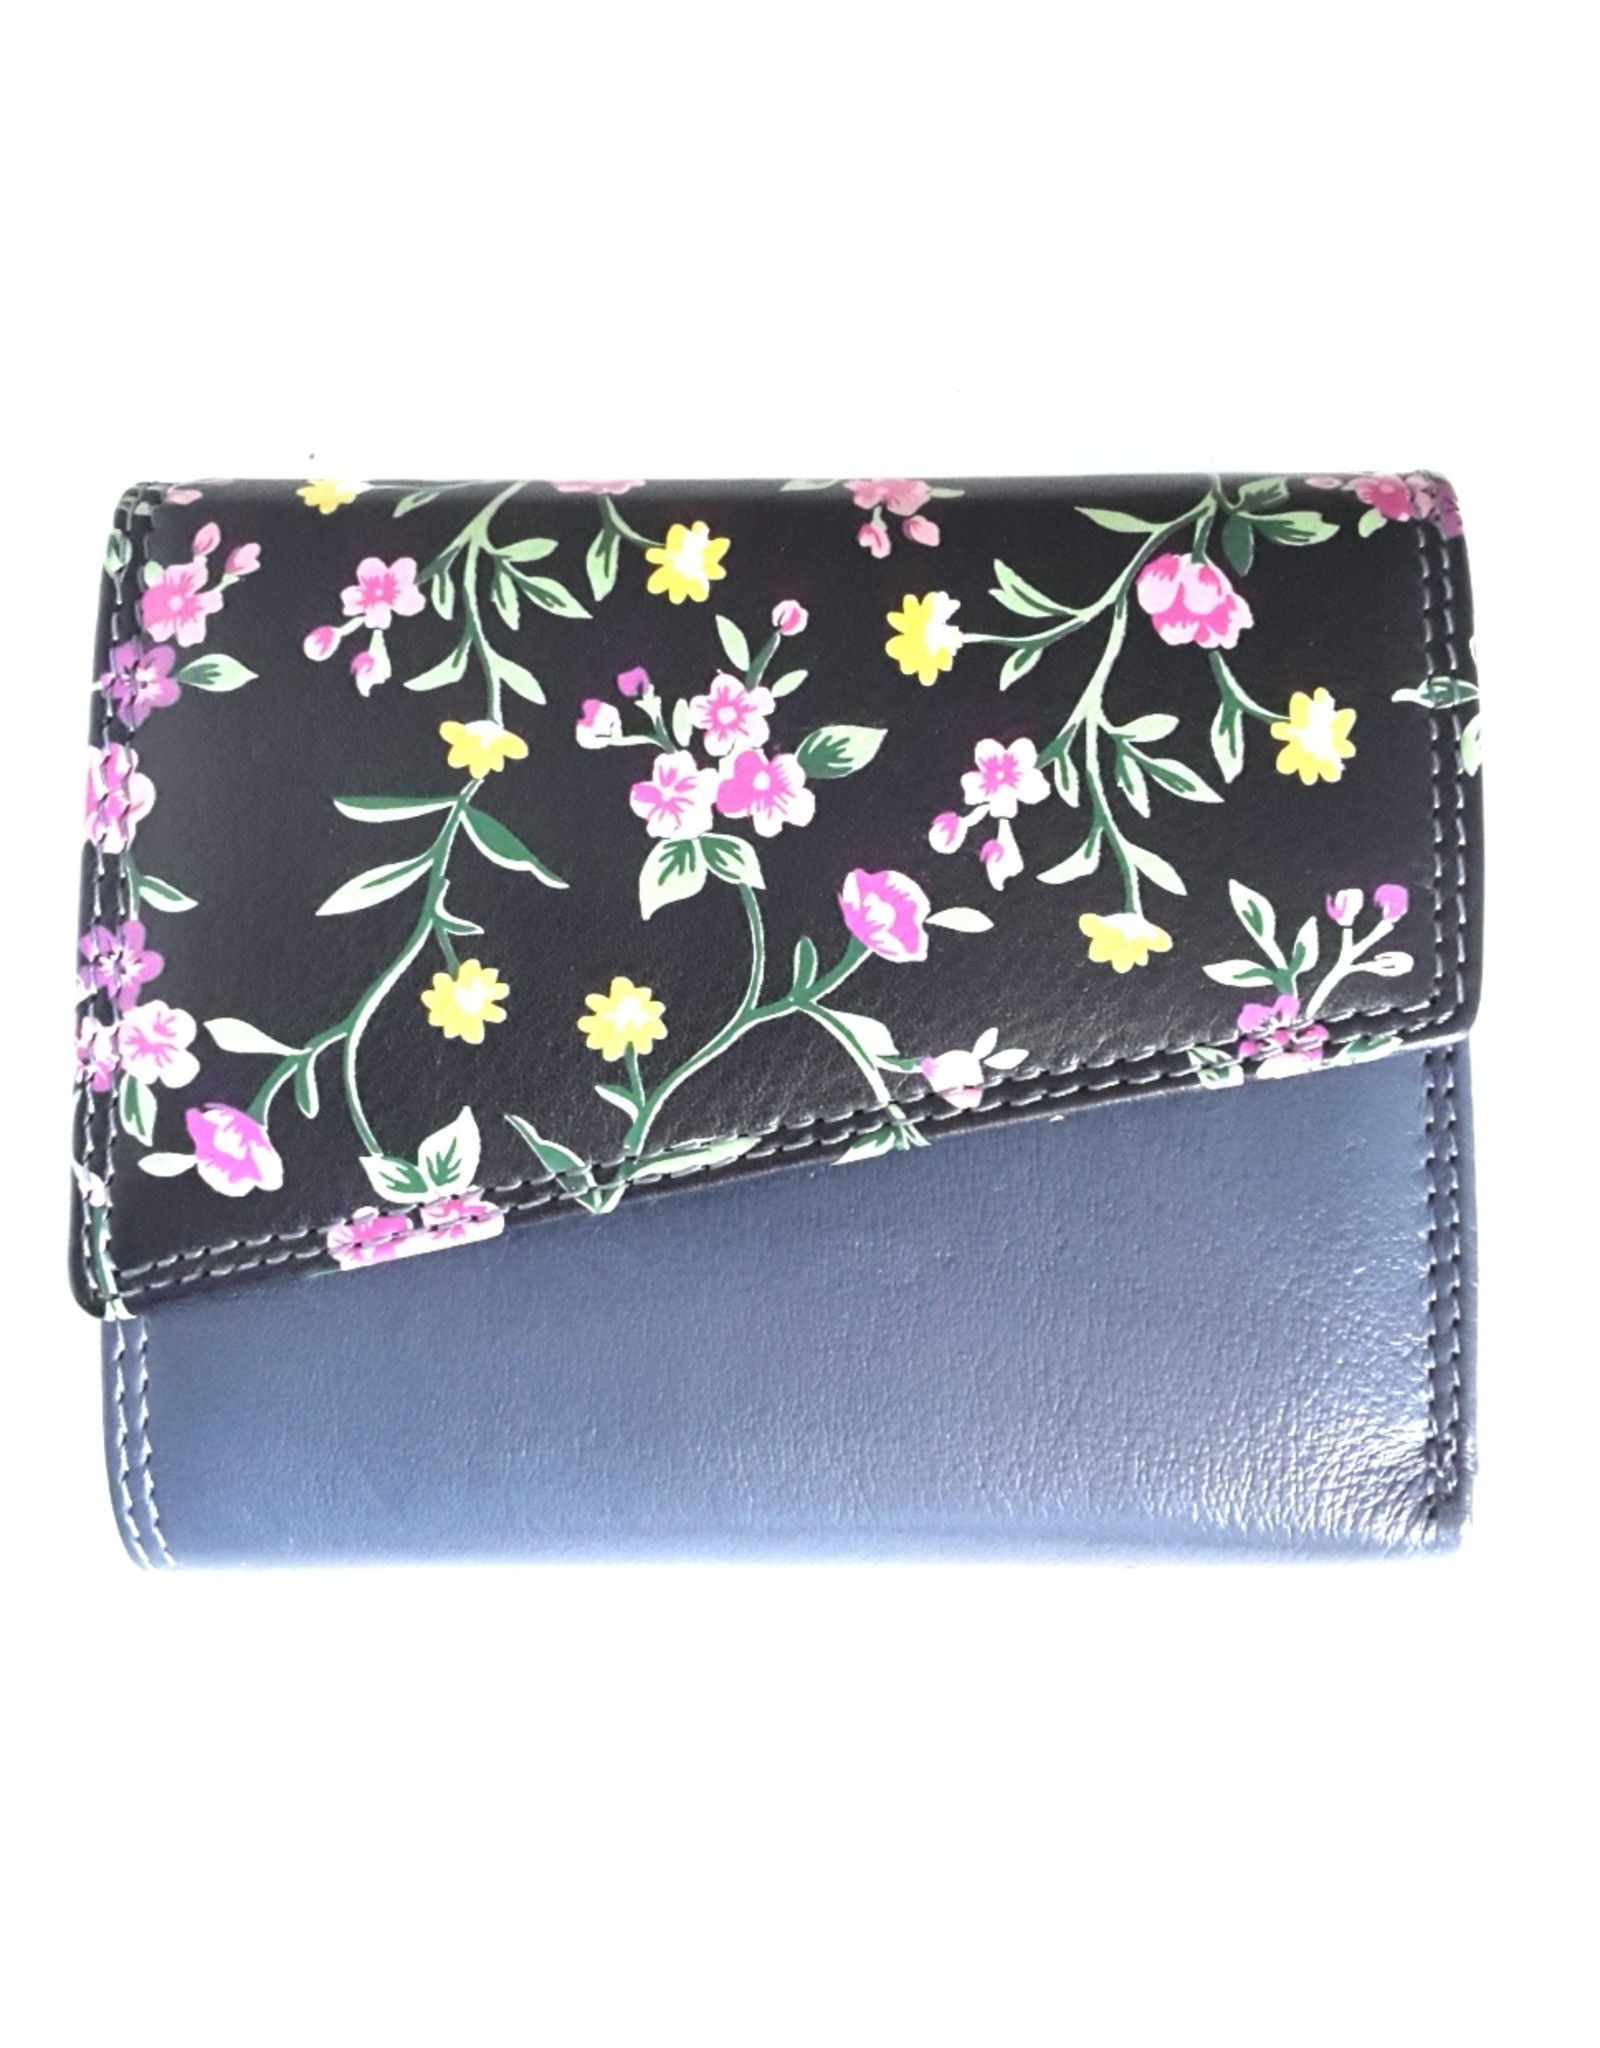 Louis Wallis Leather Wallets -  Leather wallet with floral print on the cover (dark blue-black)